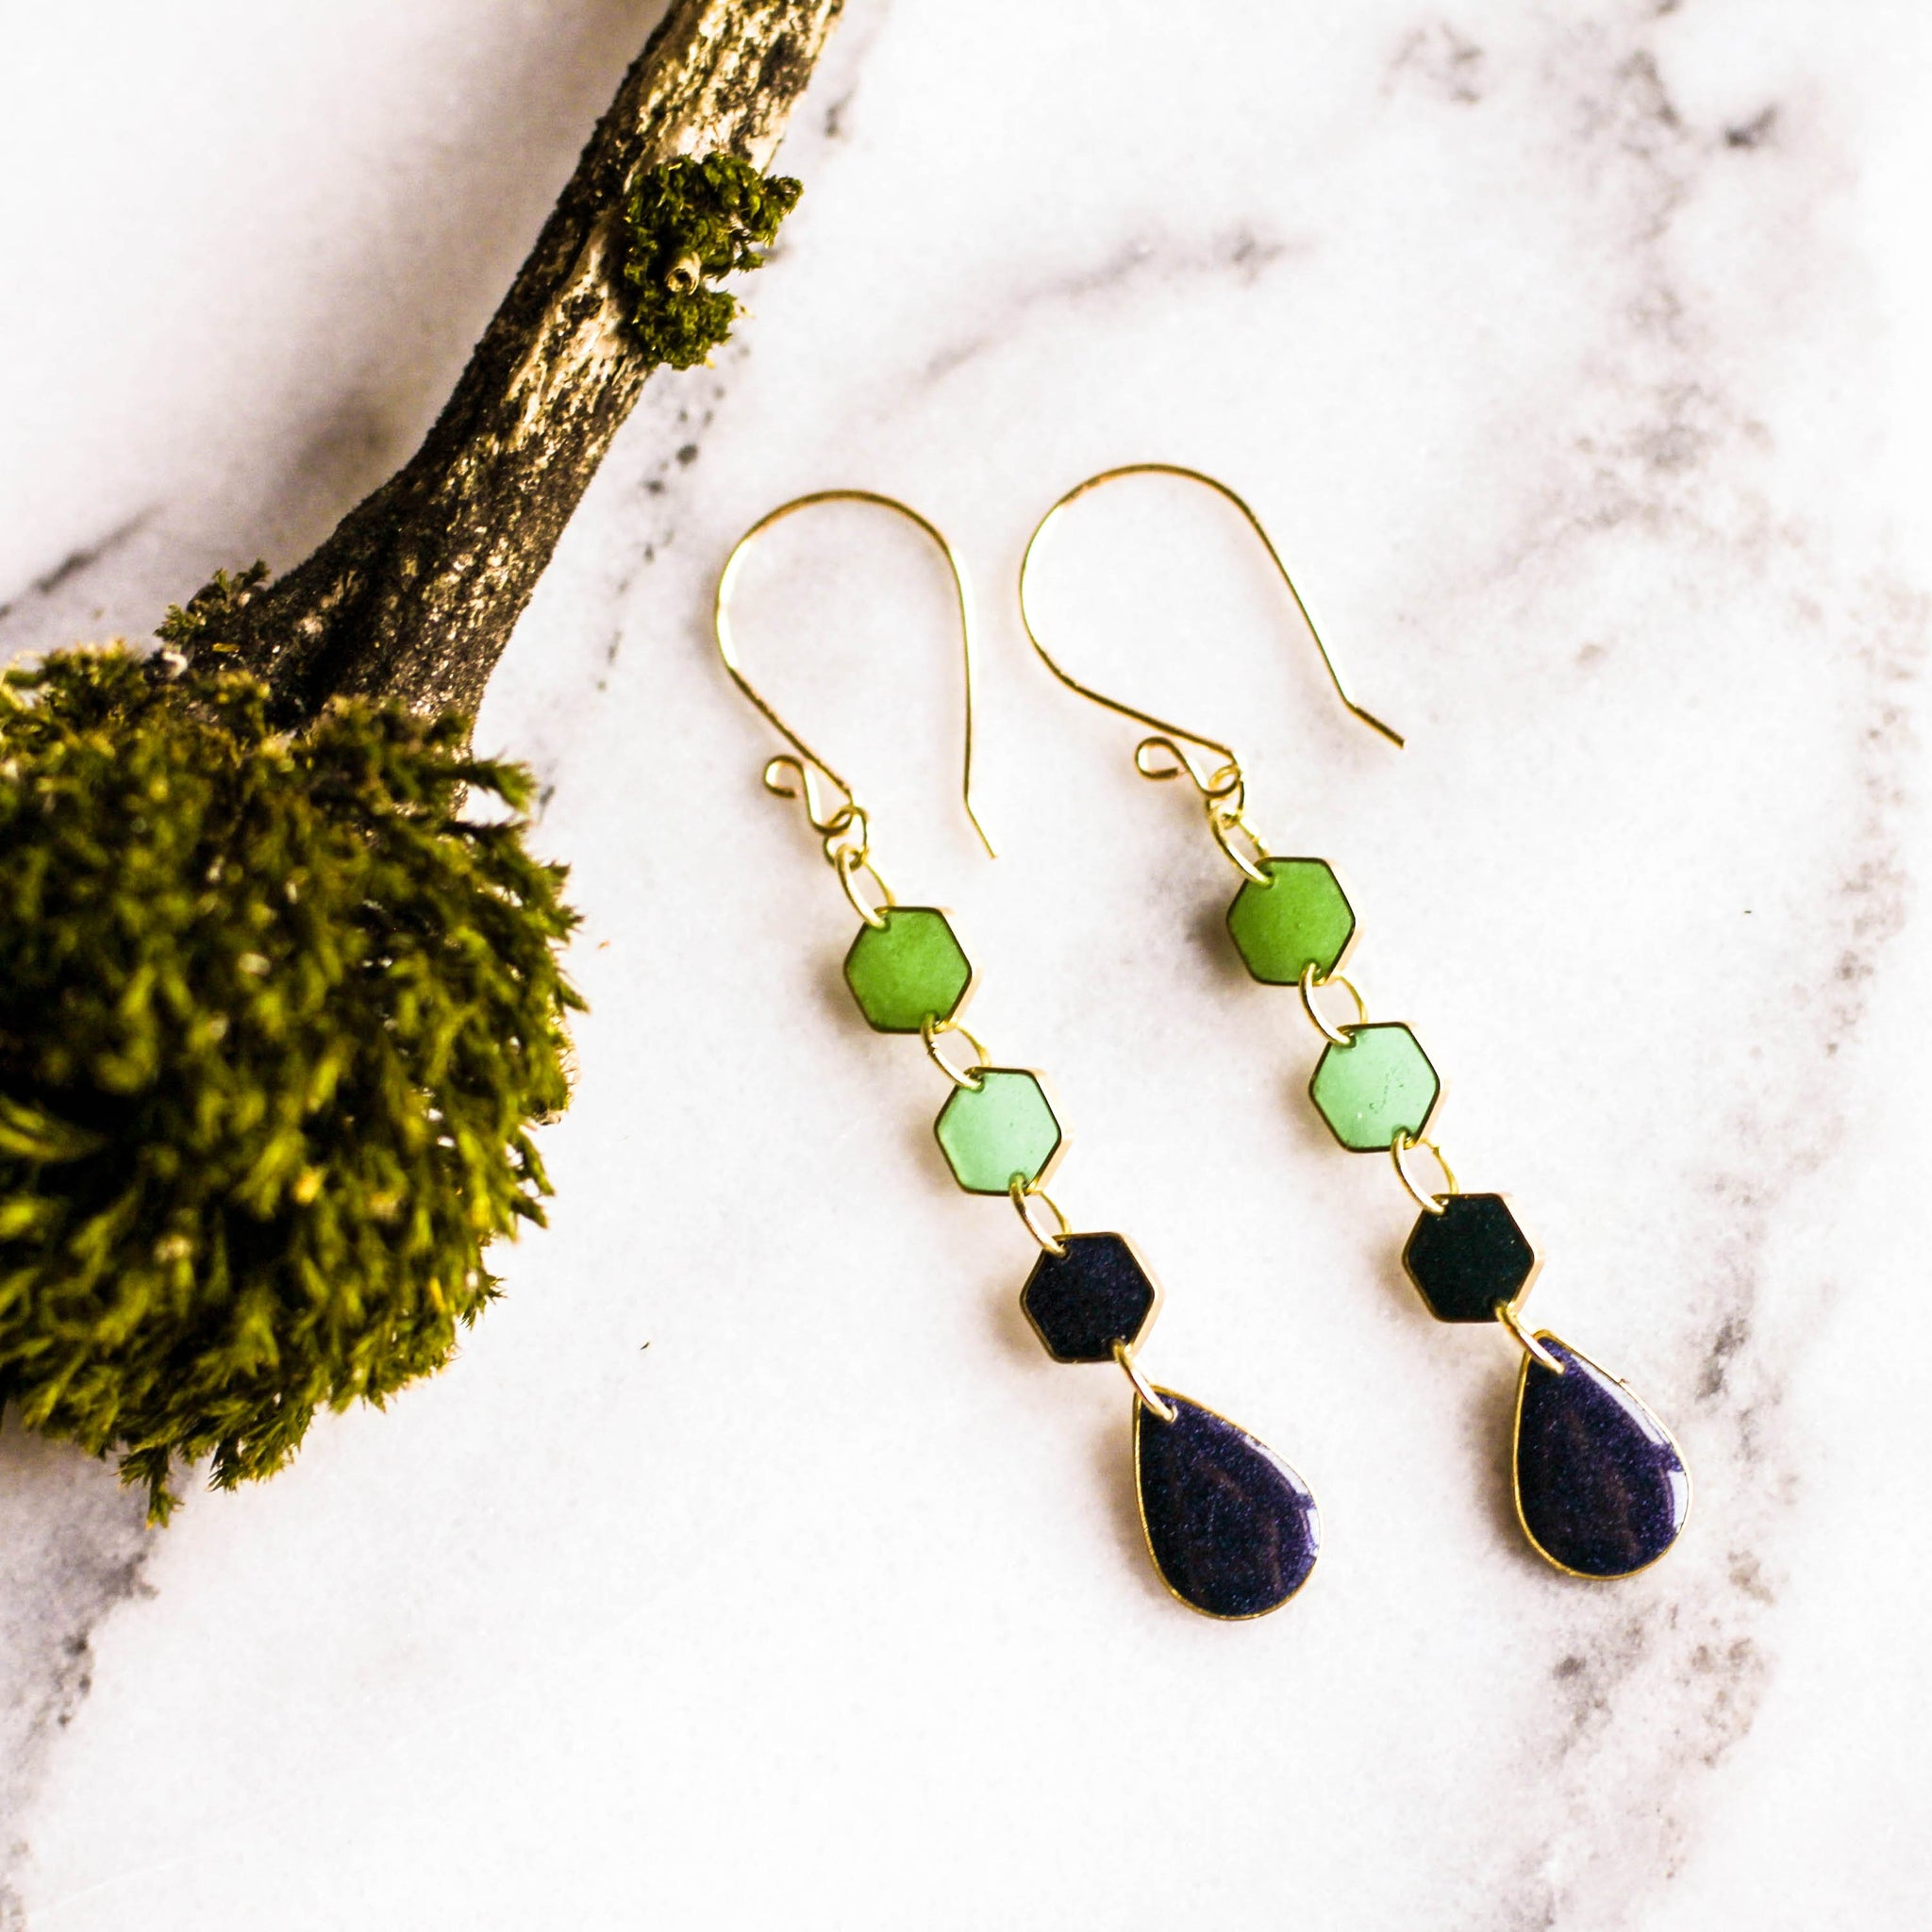 Handmade Evergreen Raindrop Earrings